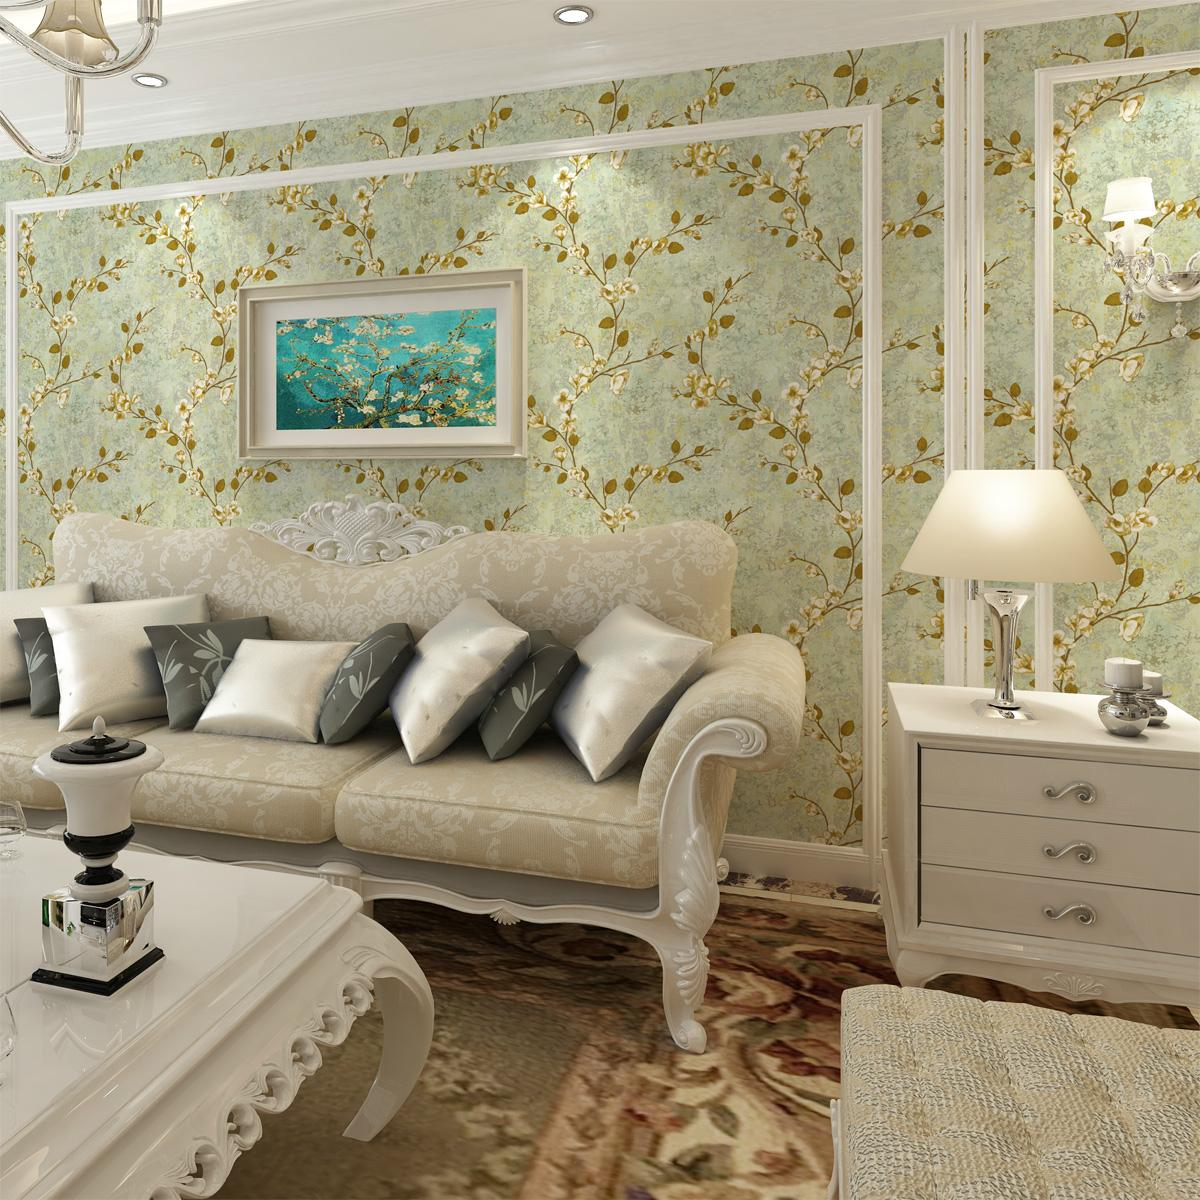 0.53x10m American Pastoral Style Retro Floral Nonwovens Wallpaper Wedding Room Bedroom Living Room Kids Room TV Background Wall0.53x10m American Pastoral Style Retro Floral Nonwovens Wallpaper Wedding Room Bedroom Living Room Kids Room TV Background Wall